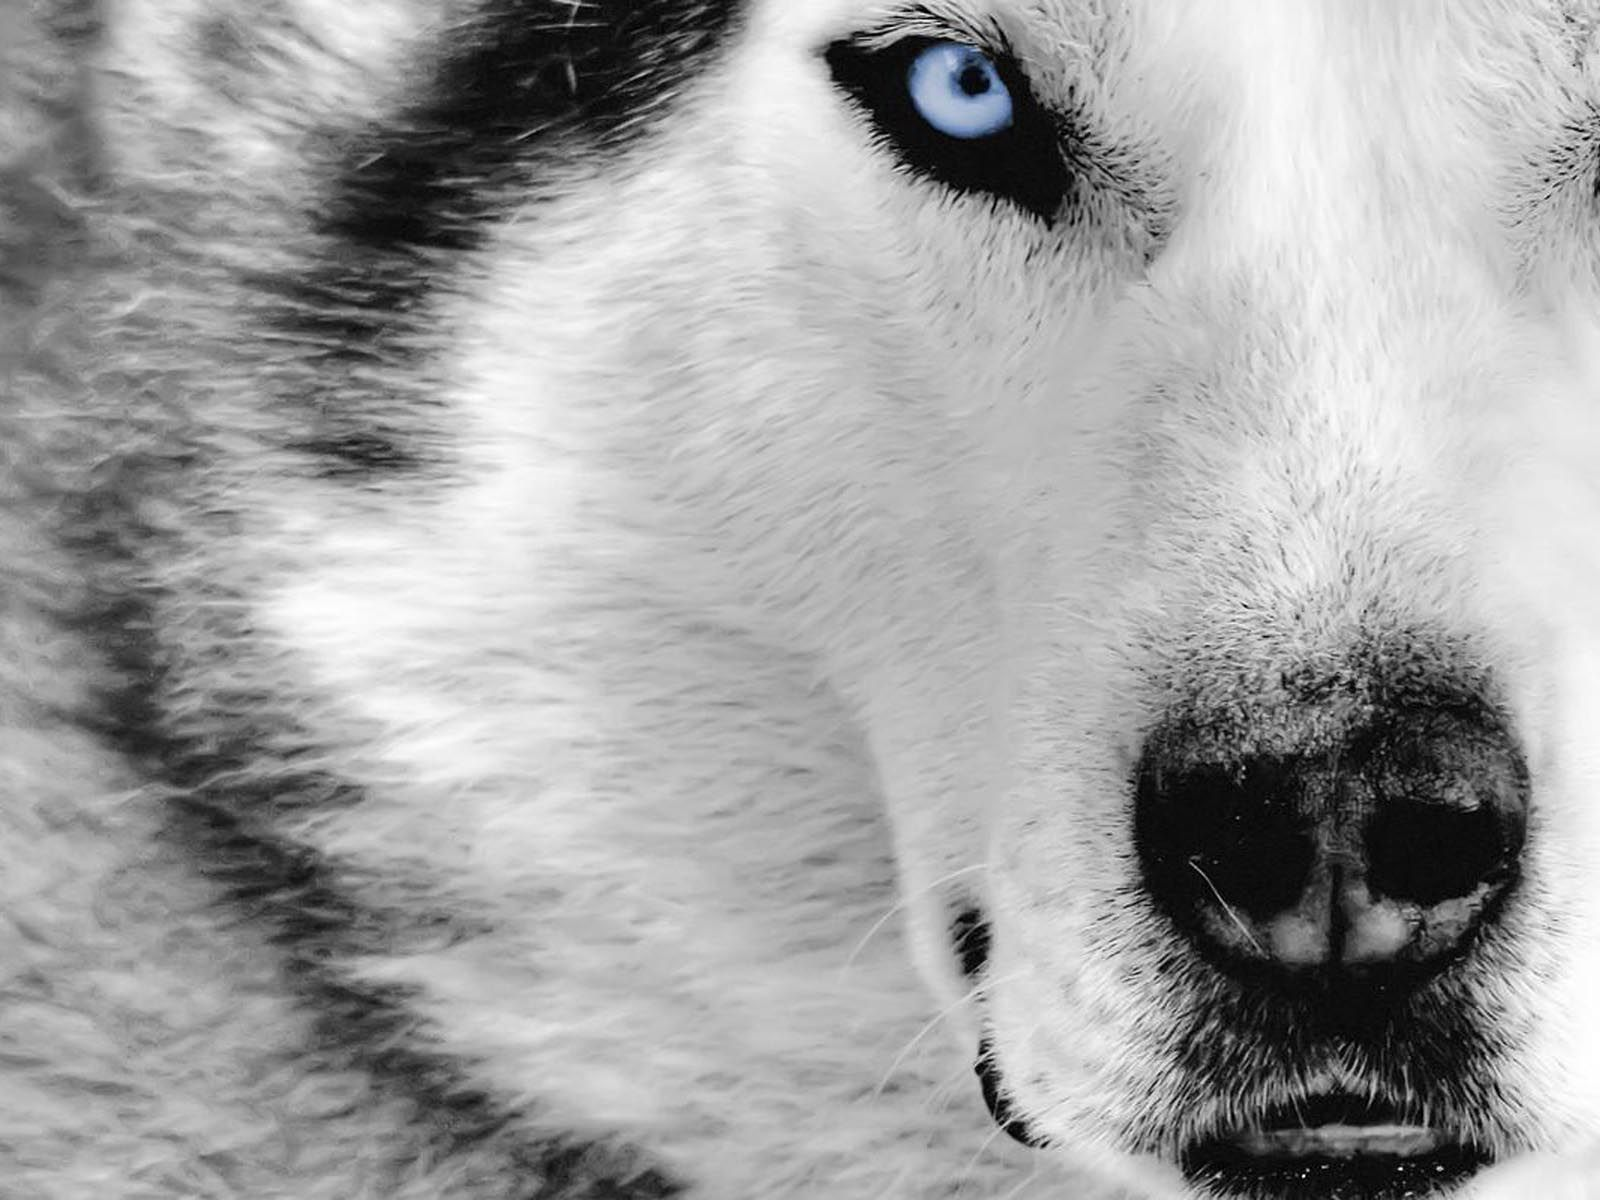 Husky Dog Wallpaper Hd 80615 For Walls And Border Wolf Eyes